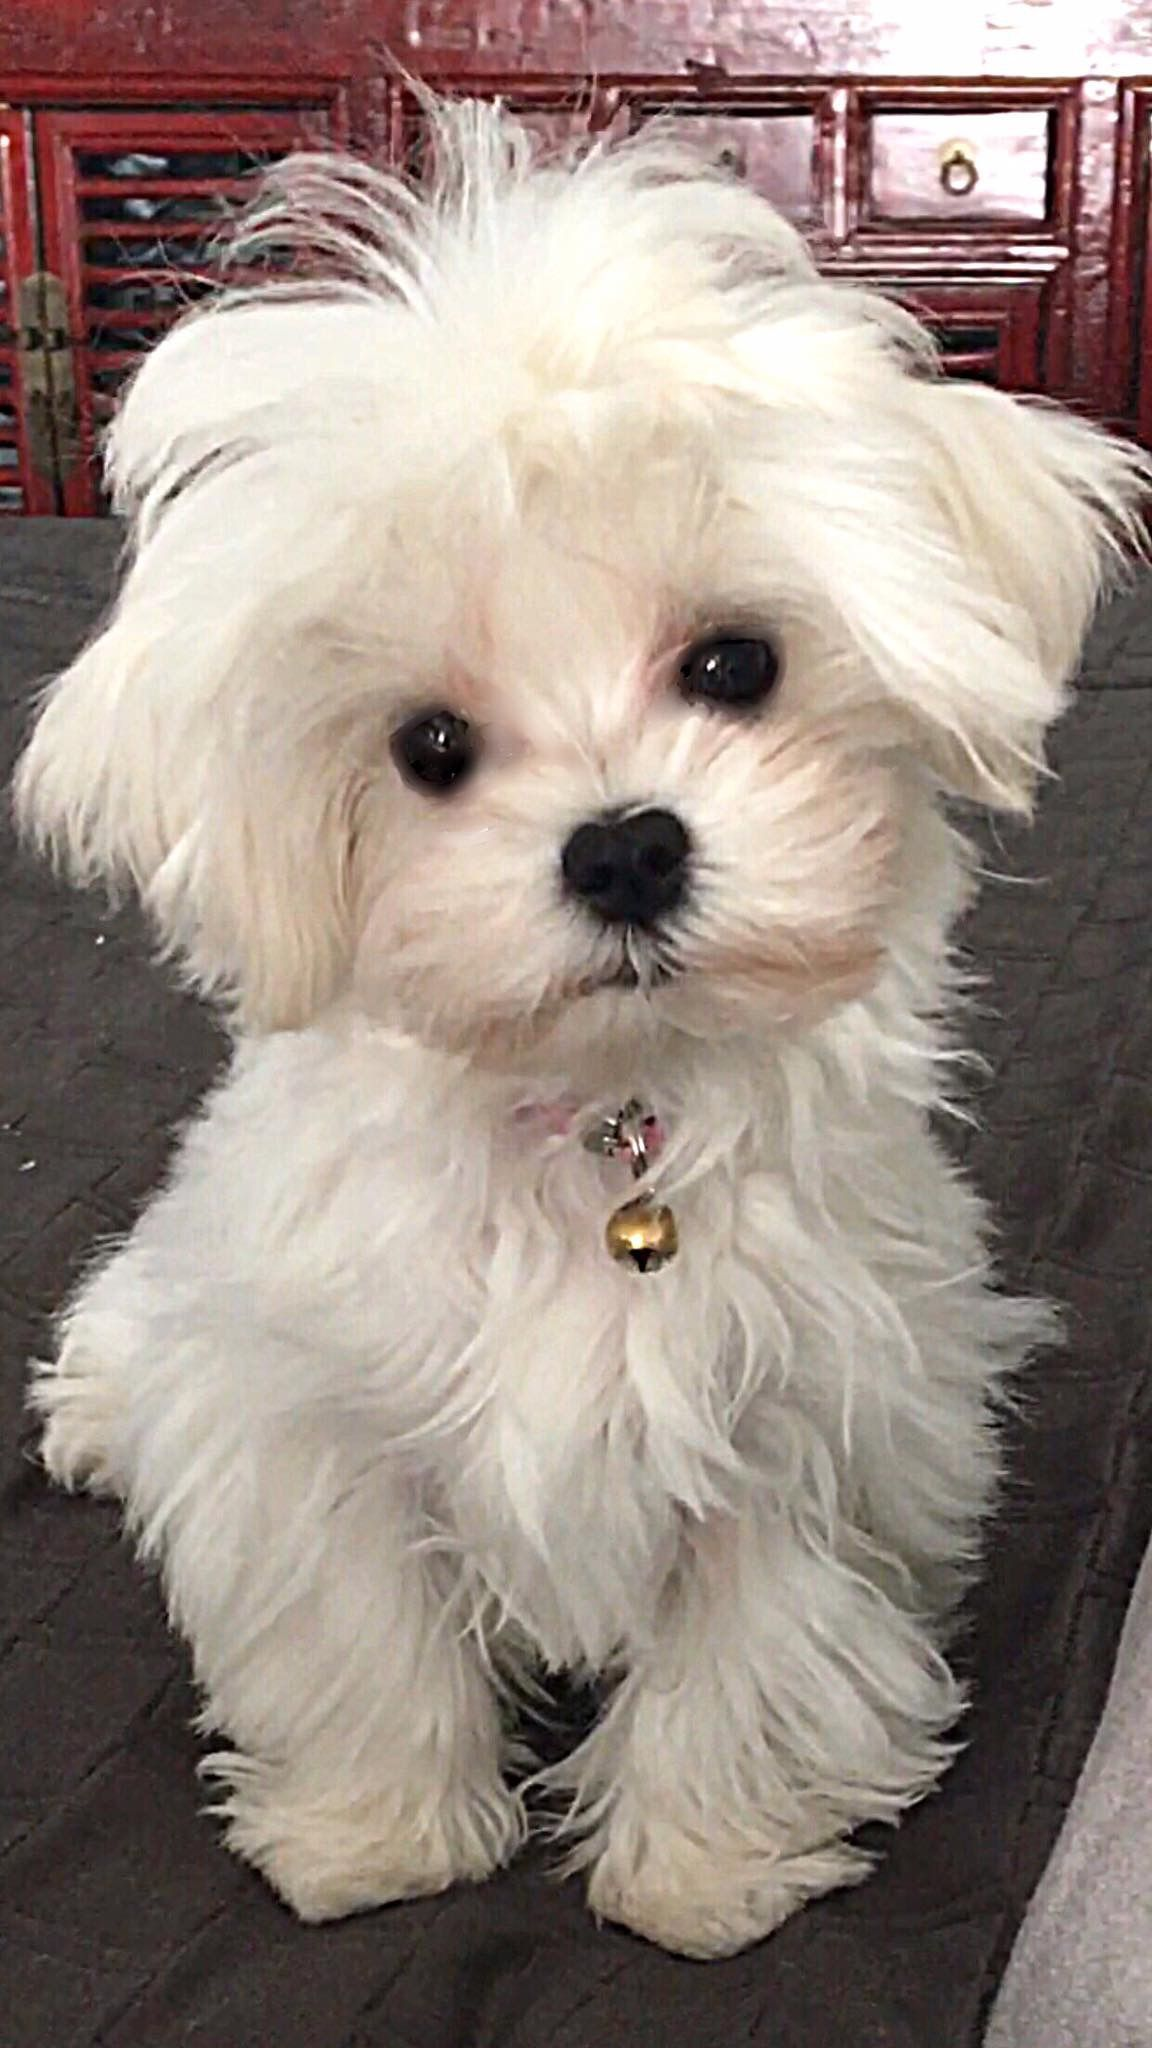 I Want This One Bunny Or Coconut Maltese Teacup Puppies